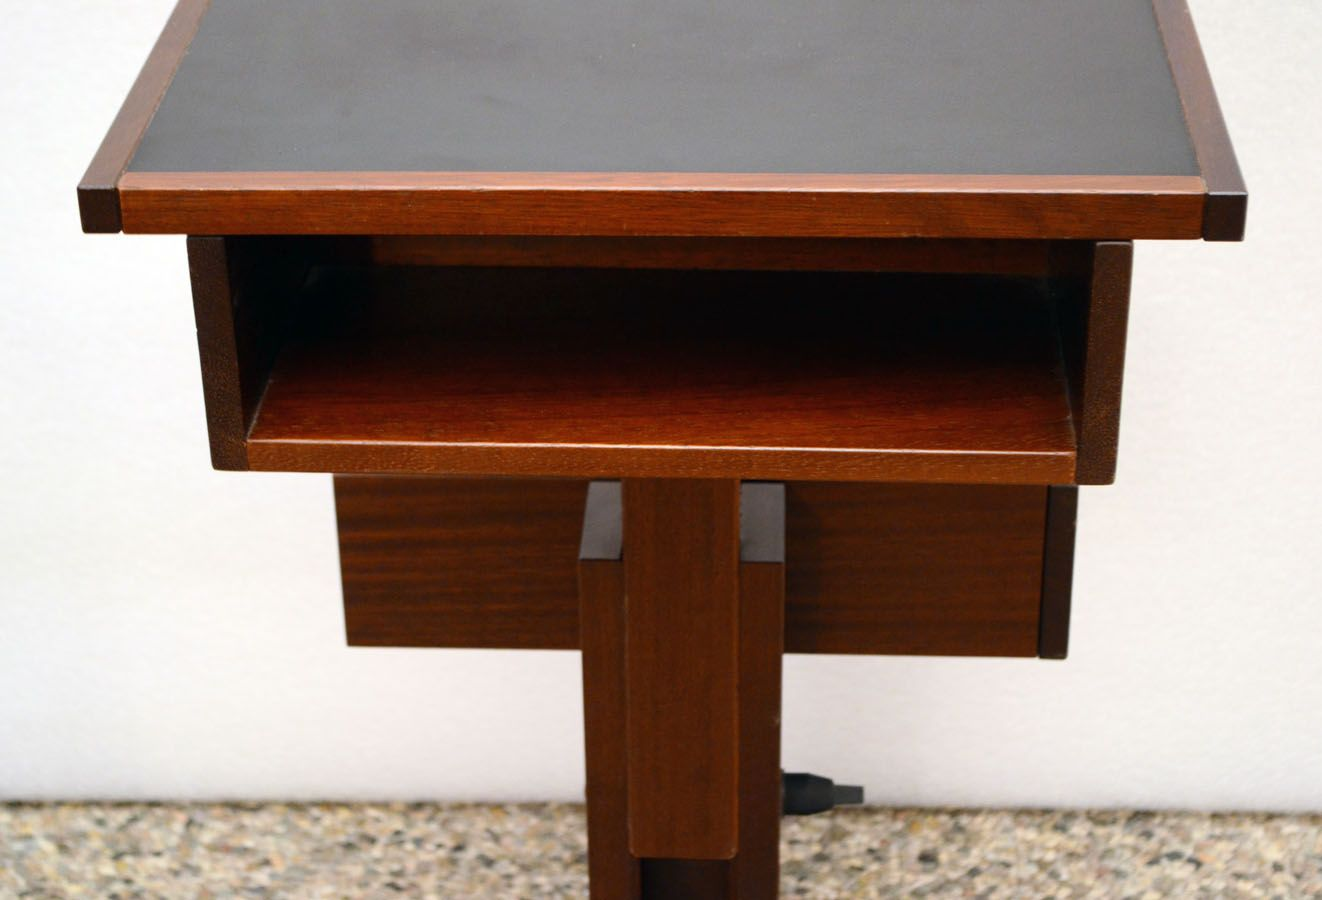 Vintage Rosewood And Laminate Coffee Table For Sale At Pamono